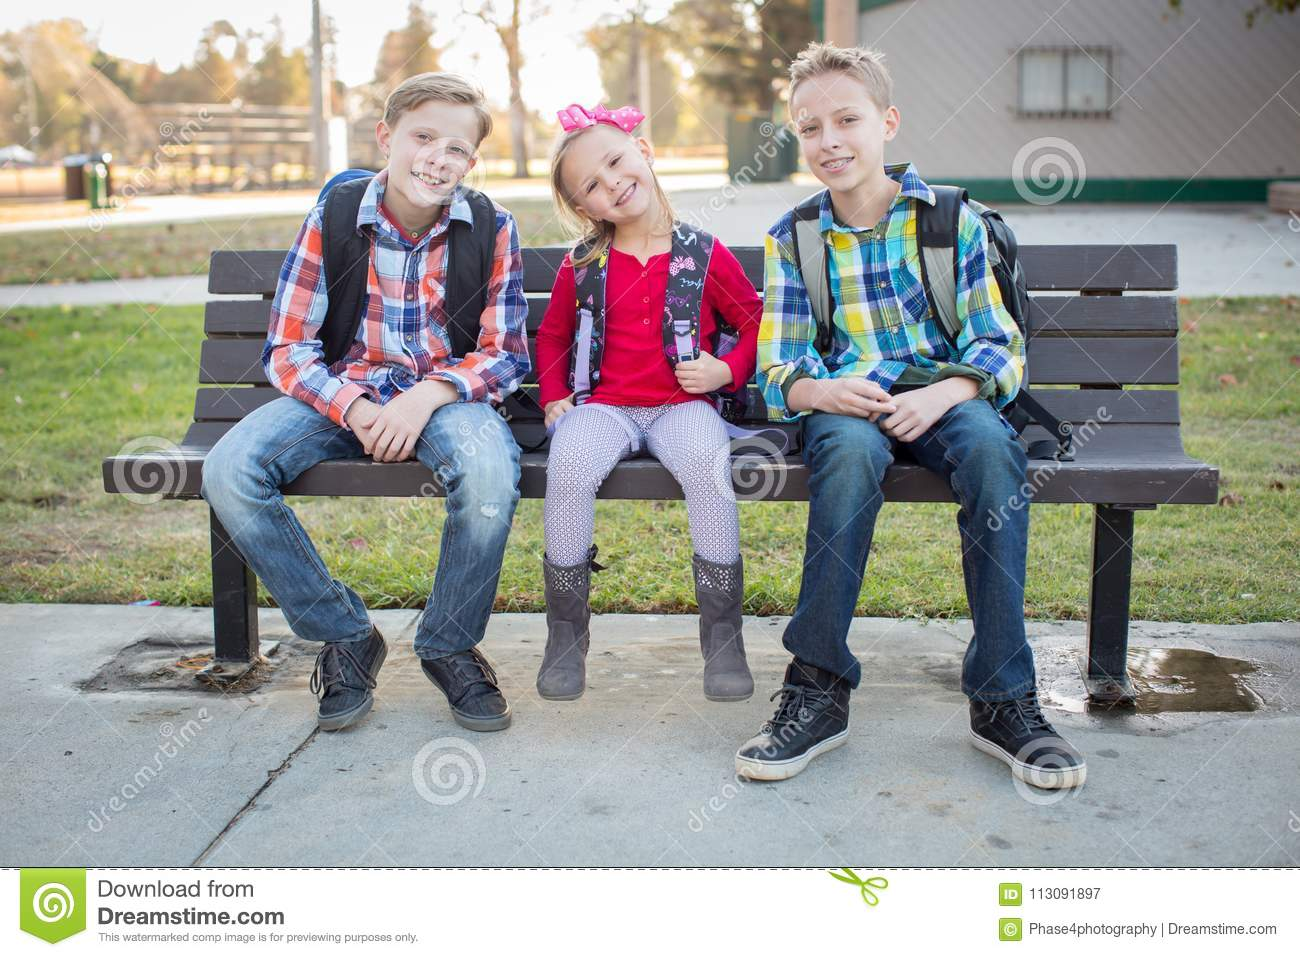 Three Young School Kids Sitting On A Bench Stock Image - Image of ... ca9d408e5df8c